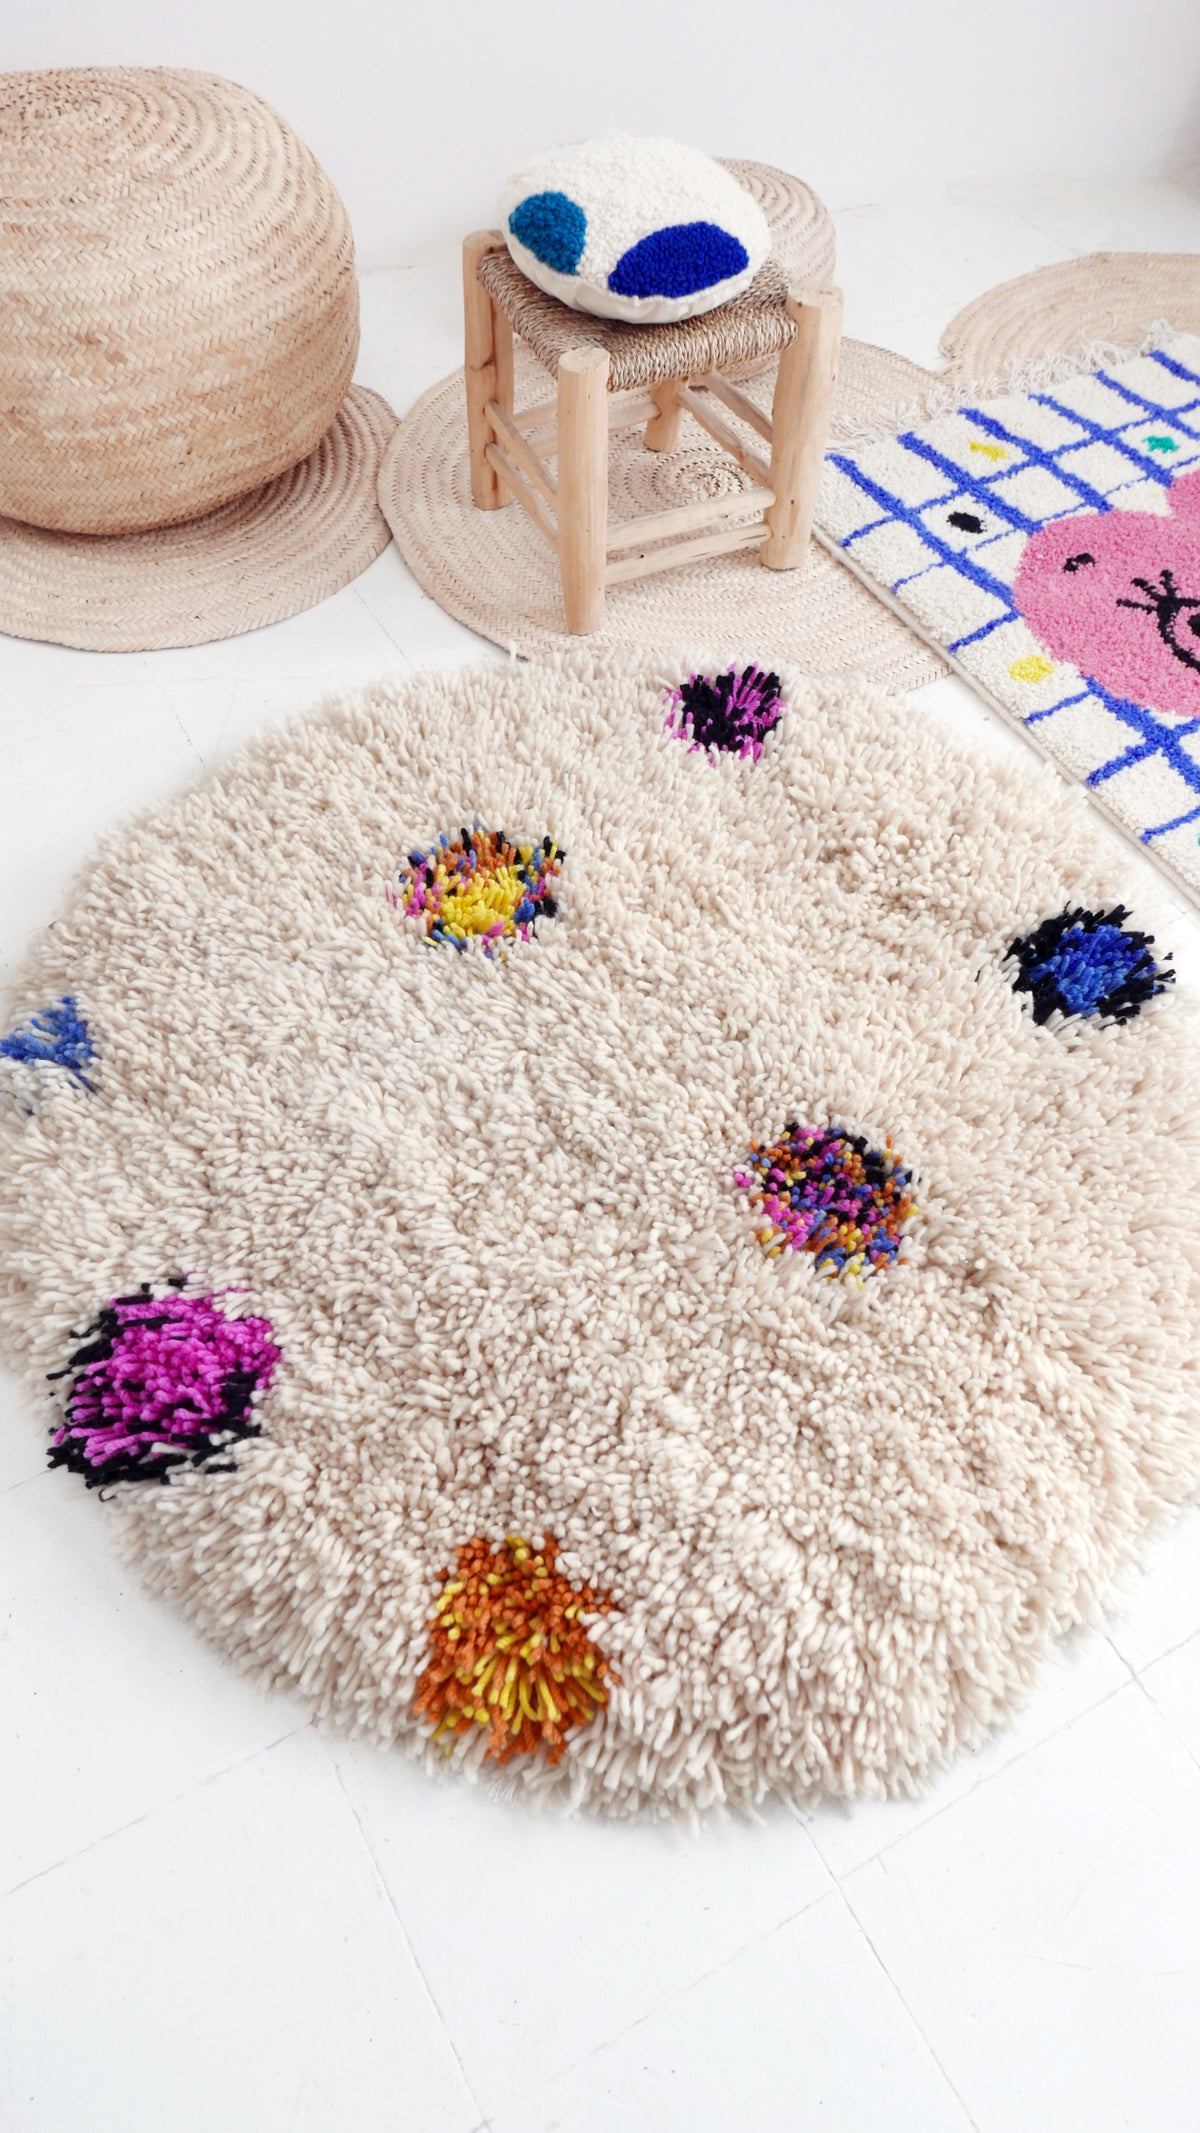 Image of Wool Rug for Kids - Round RUUUGS Mix Colors